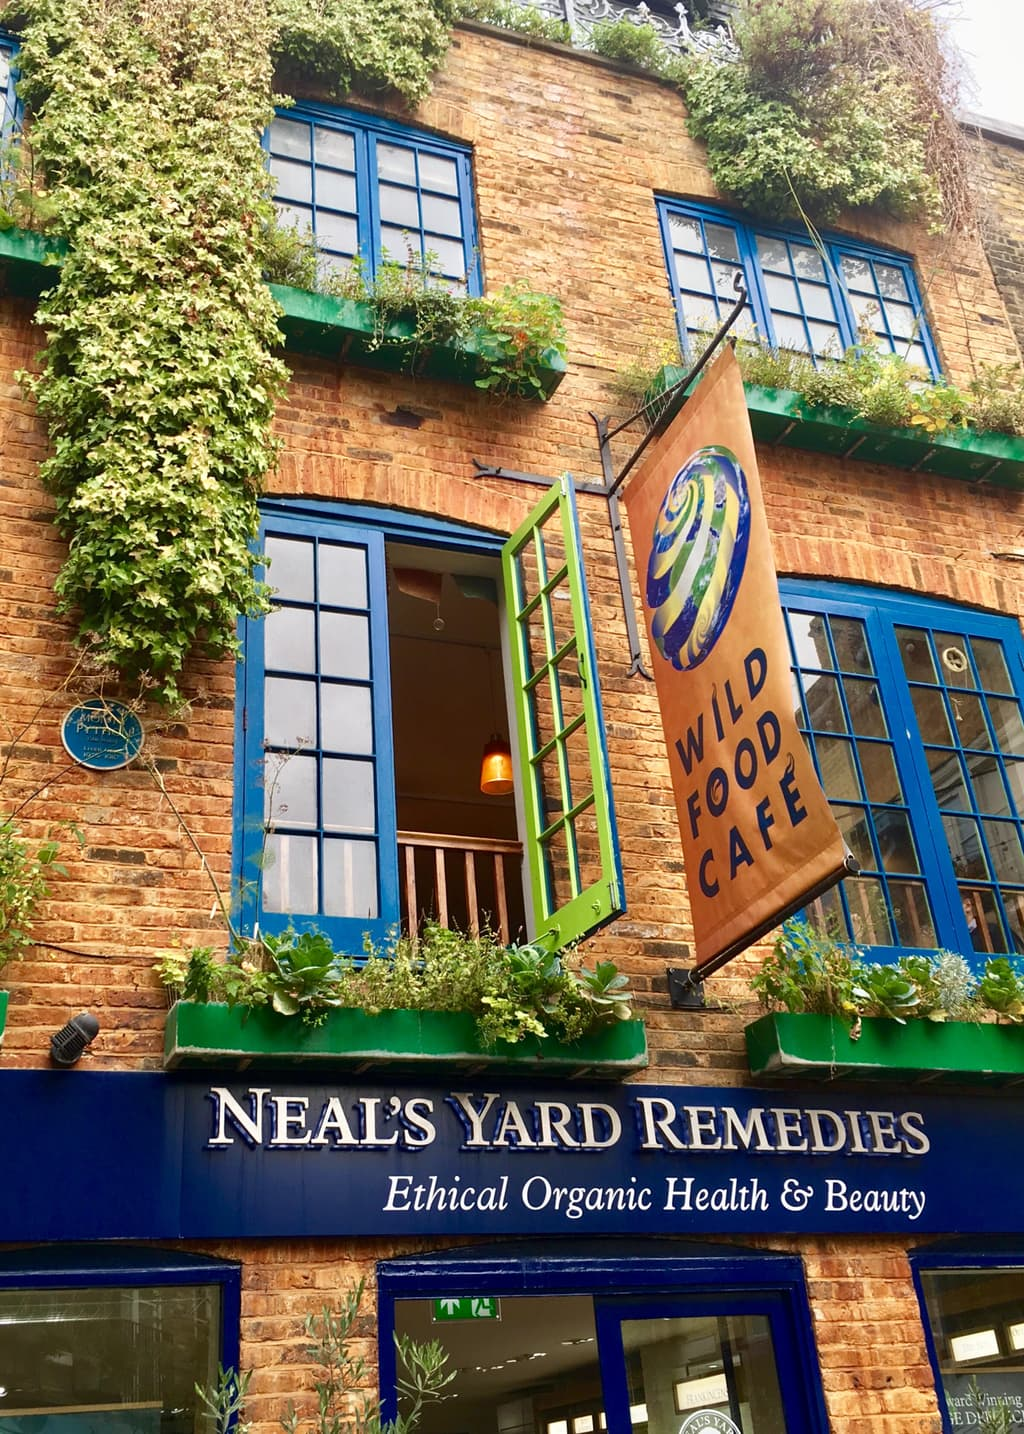 Photo of Neal's Yard Remedies store in Covent Garden on the Apple Store Photo Walk.